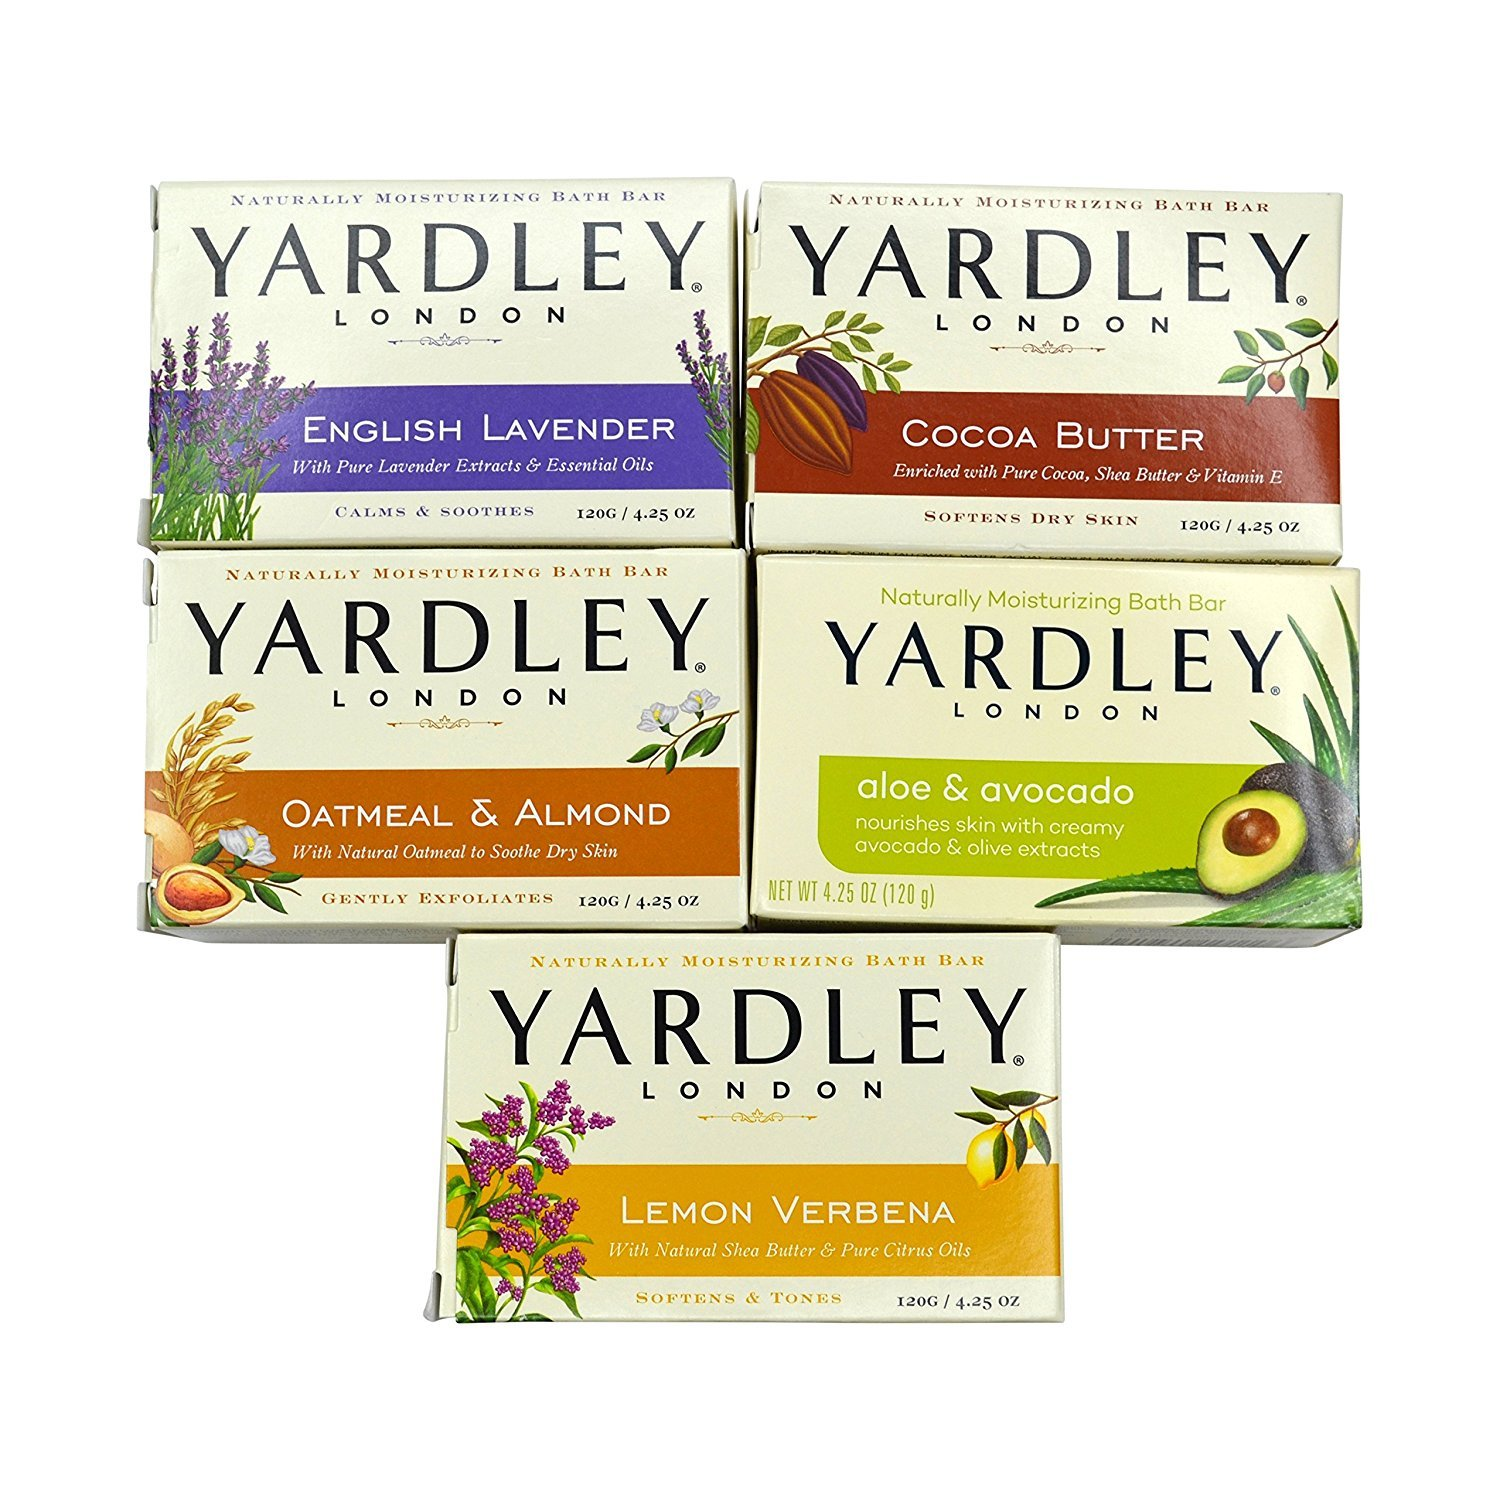 Yardley London Soap Bath Bar Bundle - 10 Bars: English Lavender, Oatmeal and Almond, Aloe and Avocado, Cocoa Butter, Lemon Verbena  4.25 Ounce Bars (Pack of 10 Bars, Two of each) by Yardley